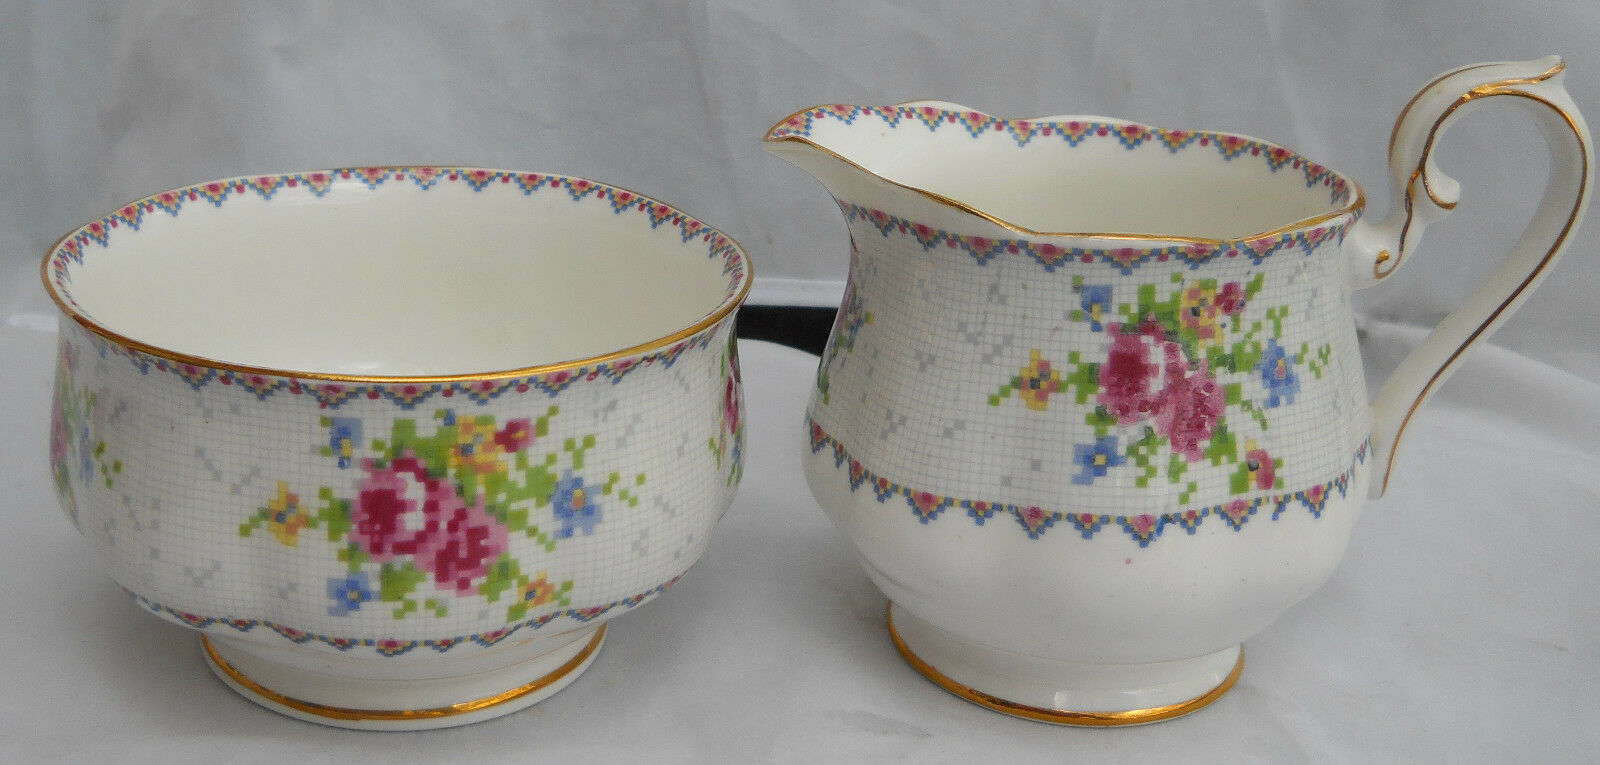 Primary image for ROYAL ALBERT PETIT POINT CREAMER PITCHER SUGAR BOWL ROSES ENGLAND BONE CHINA